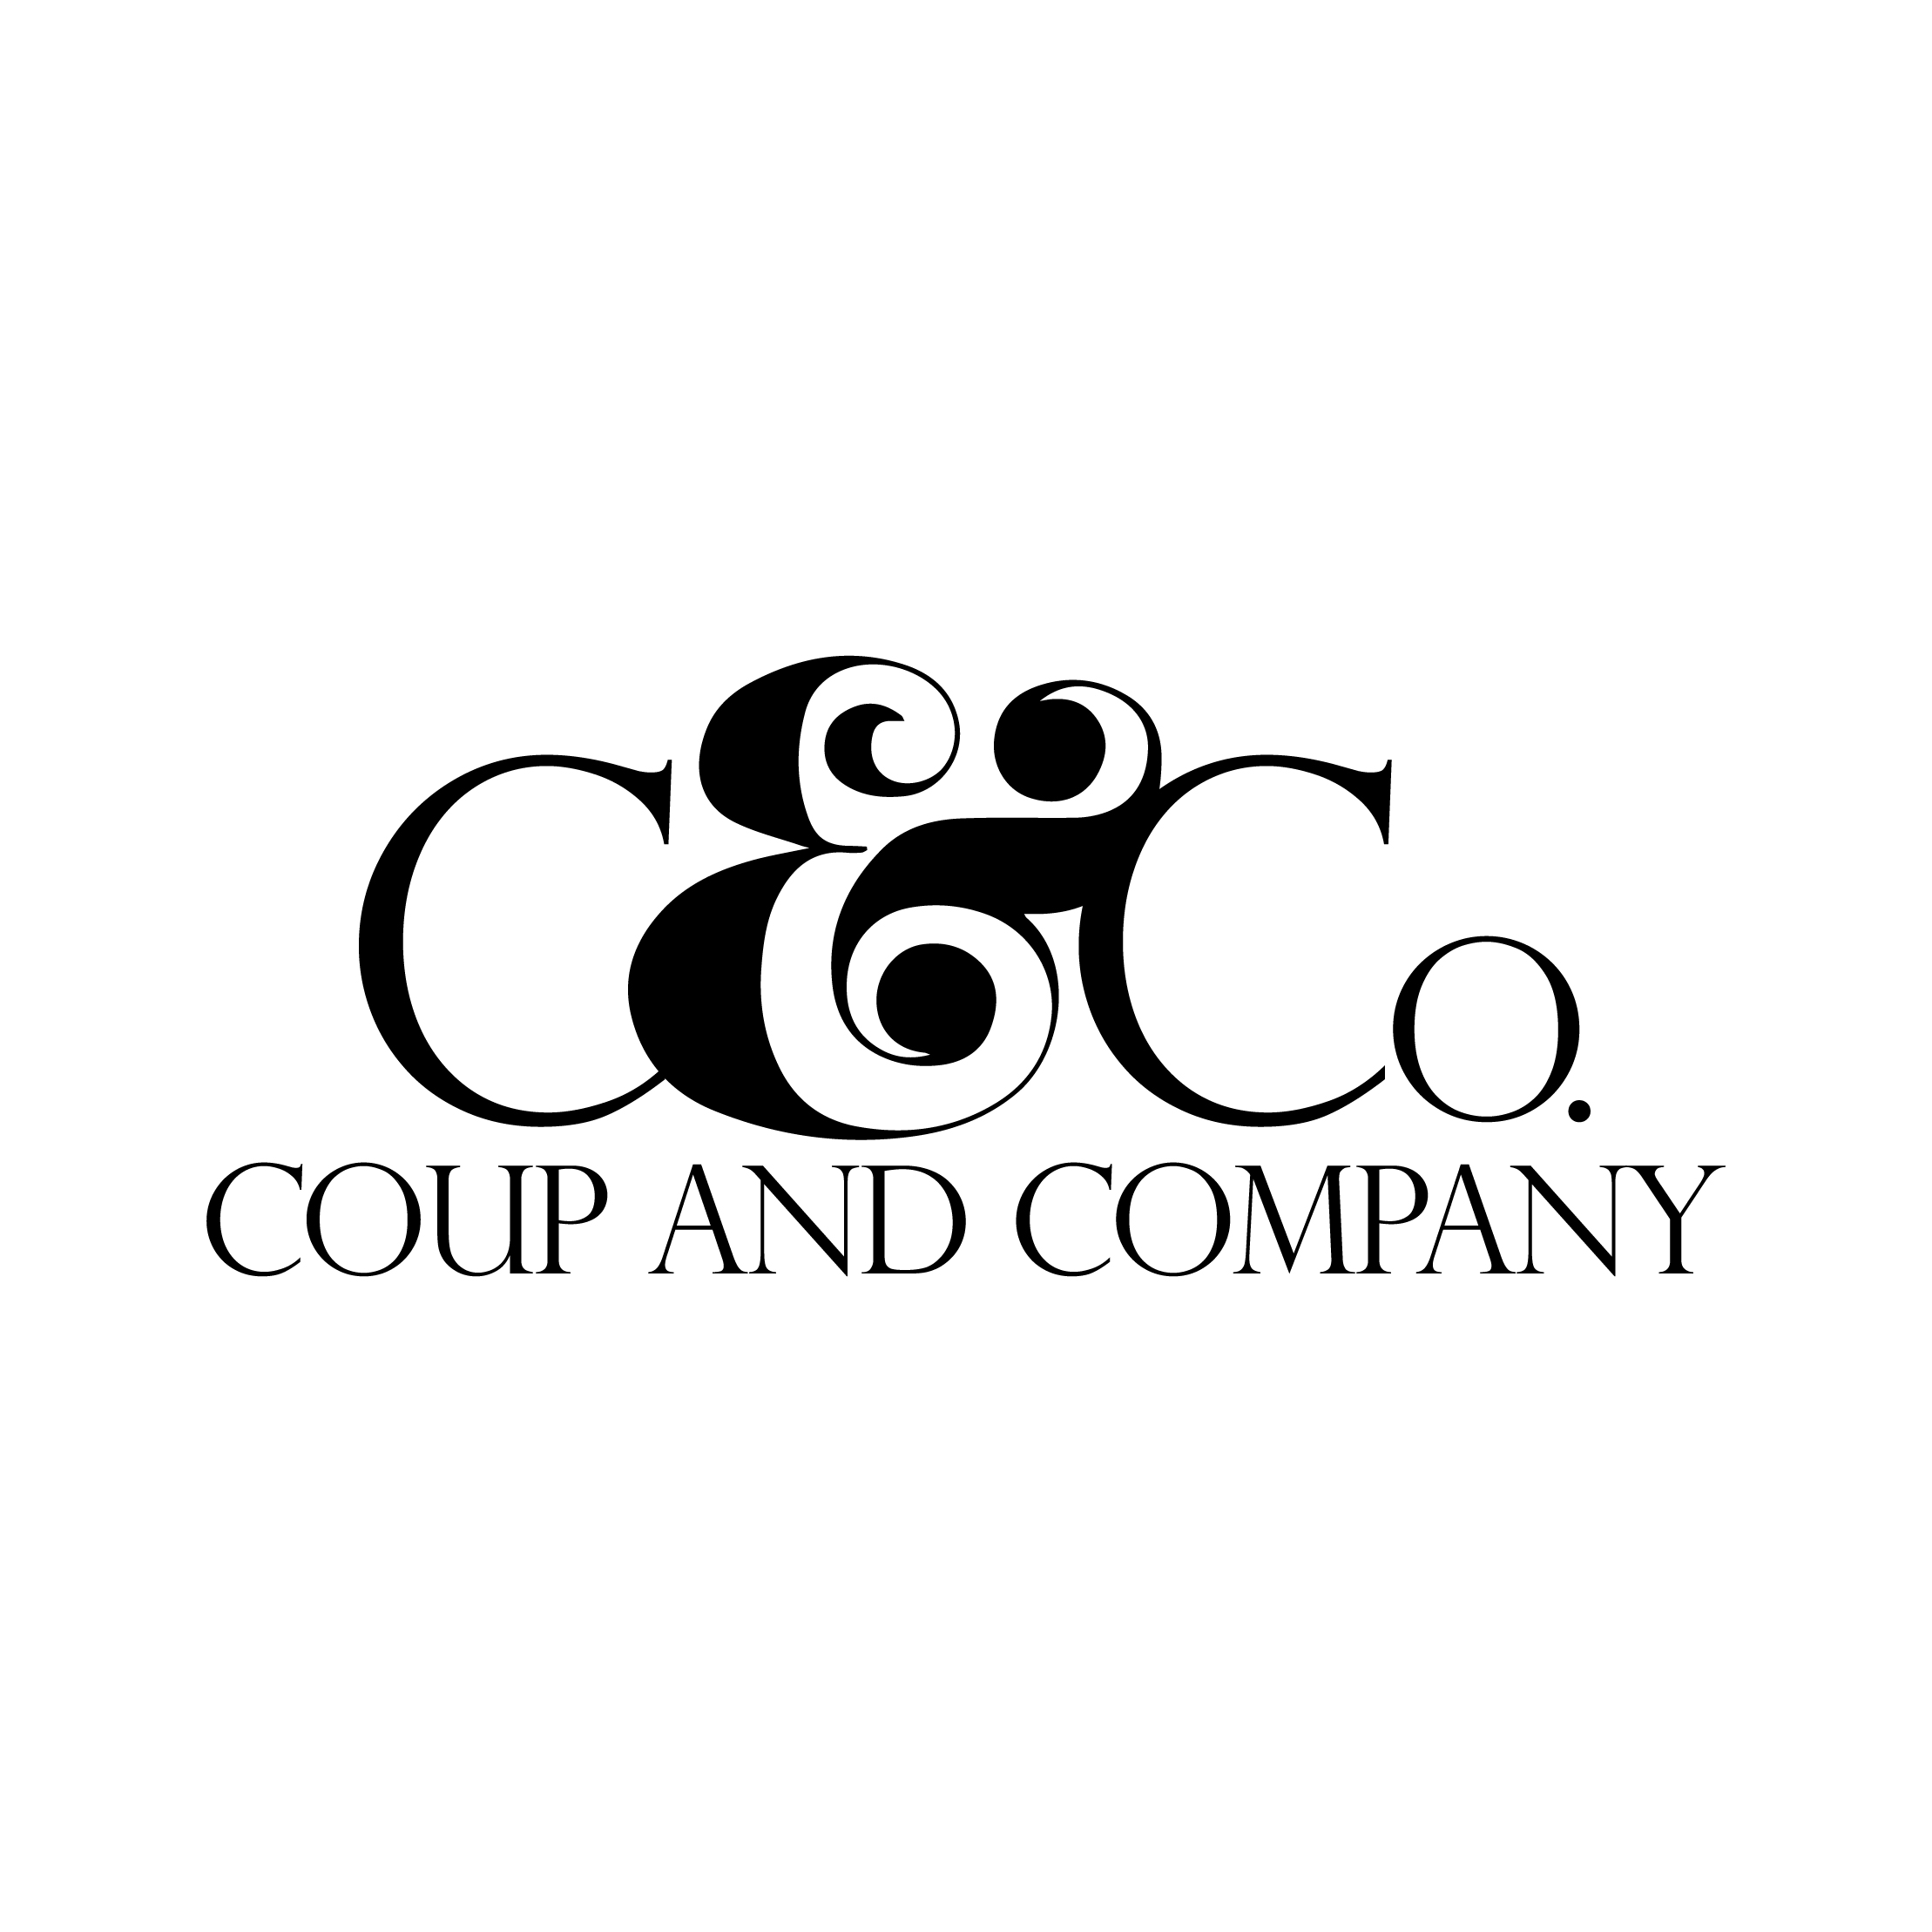 Coup&co logo_black-03.jpg